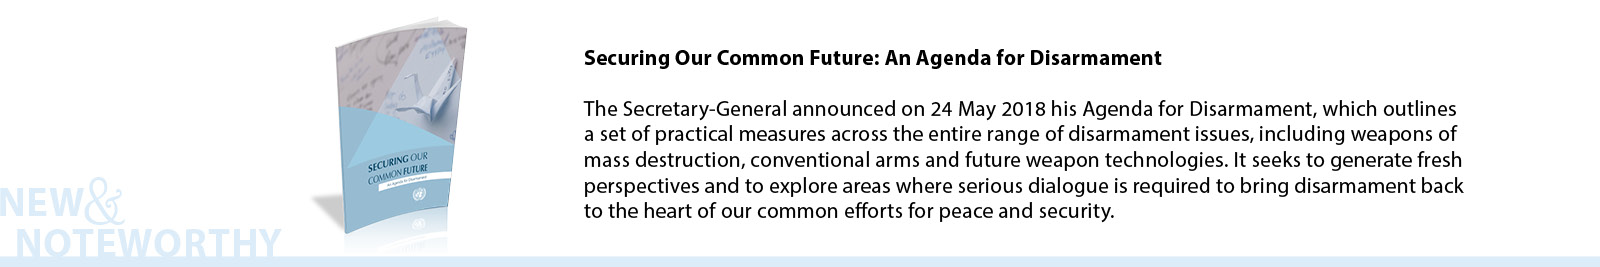 Securing Our Common Future: An Agenda for Disarmament -The Secretary-General announced on 24 May 2018 his Agenda for Disarmament, which outlines a set of practical measures across the entire range of disarmament issues, including weapons of mass destruction, conventional arms and future weapon technologies. It seeks to generate fresh perspectives and to explore areas where serious dialogue is required to bring disarmament back to the heart of our common efforts for peace and security.